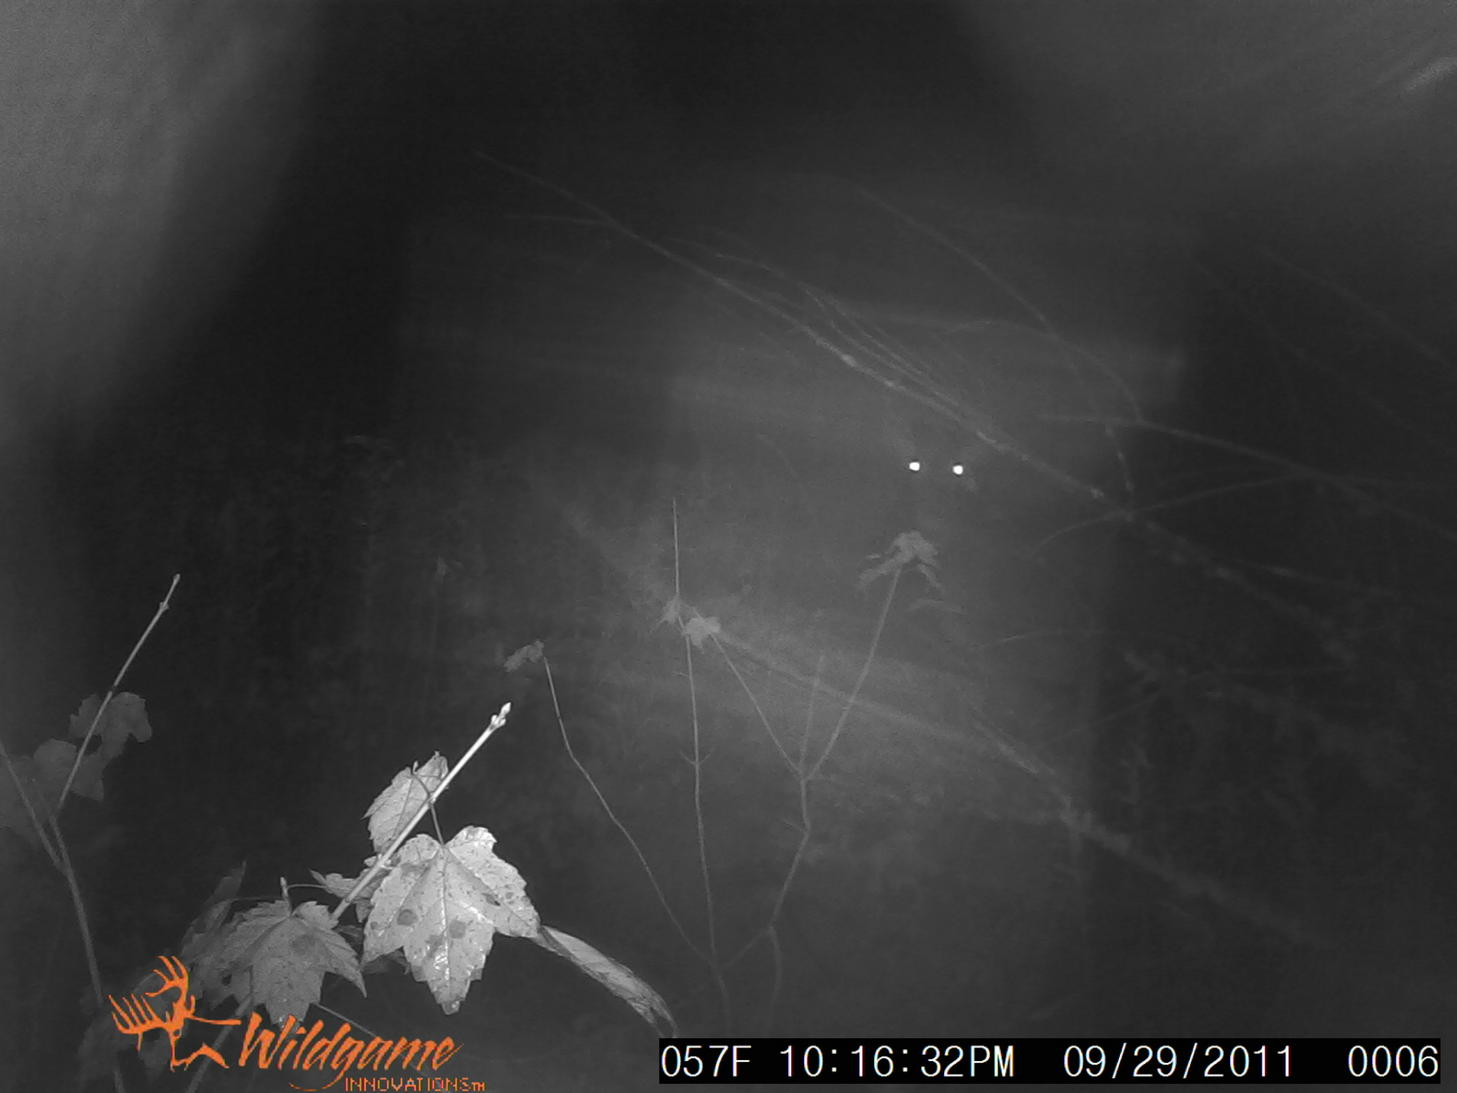 Anyone wanna take a guess-pats-trail-cam-pics-rumney-apple-orchard-006.jpg